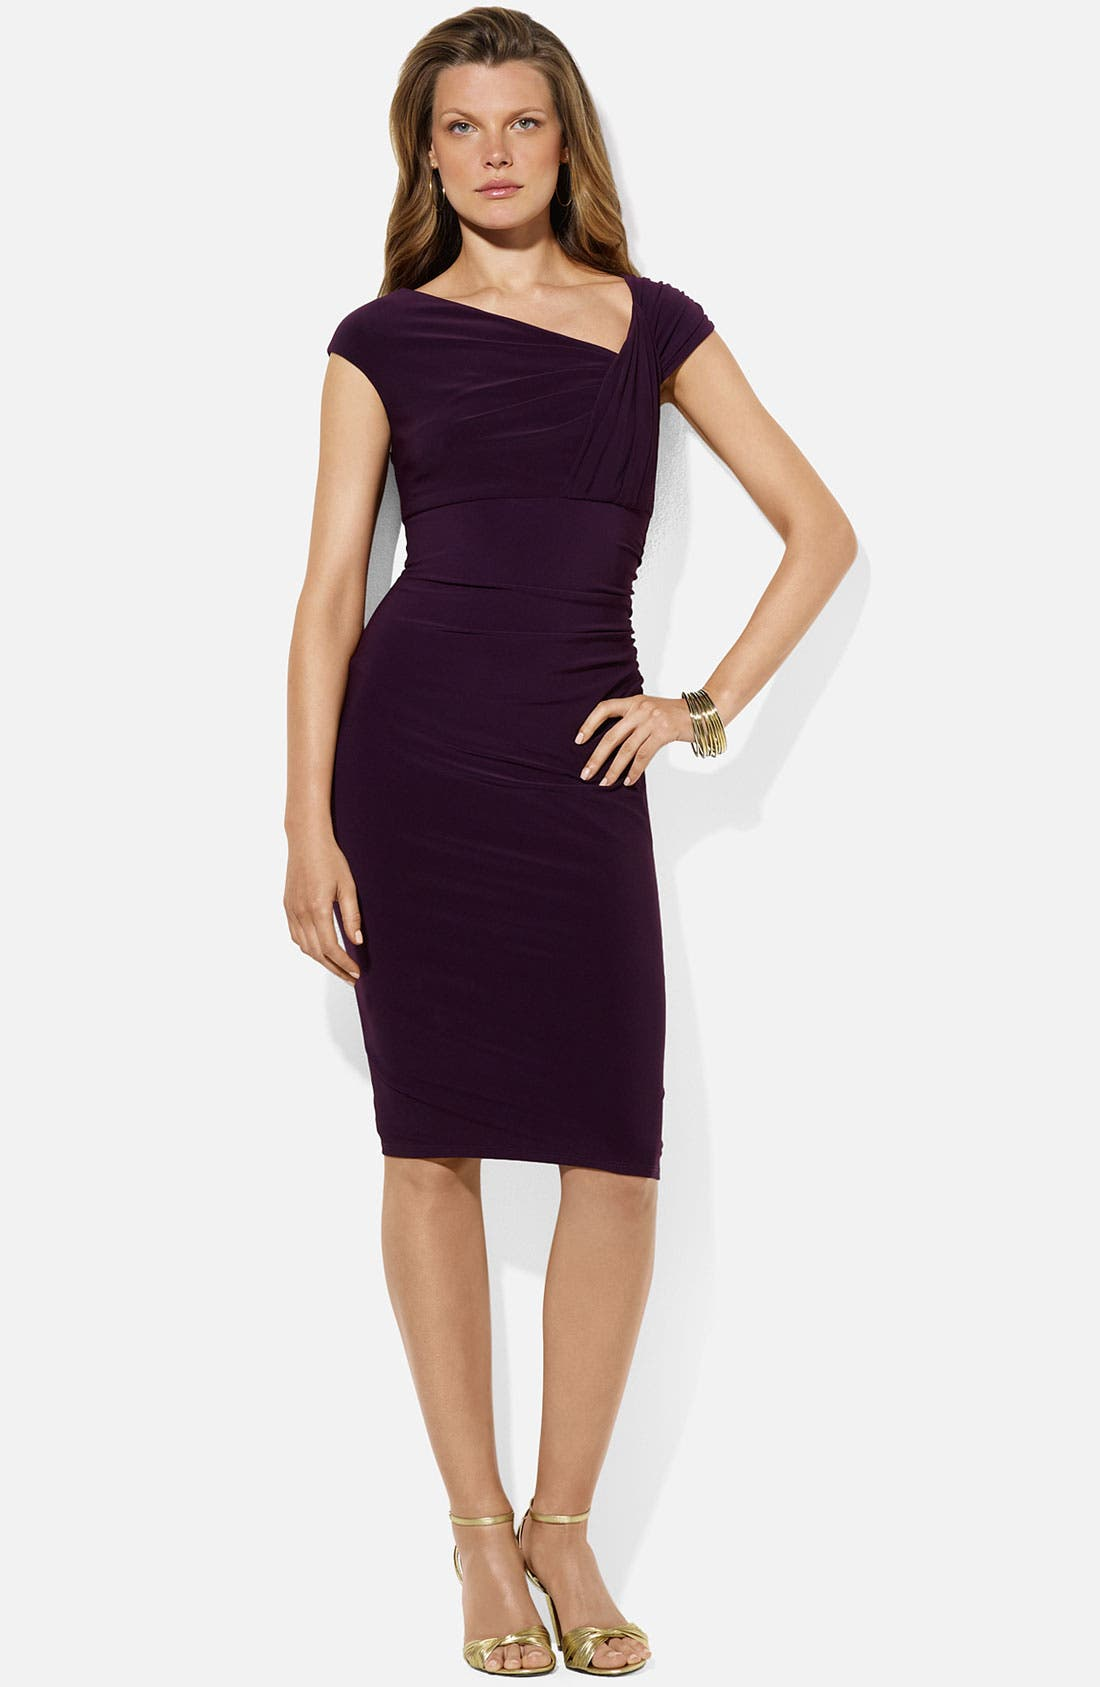 Alternate Image 1 Selected - Lauren Ralph Lauren 'Weller' Jersey Sheath Dress (Petite)